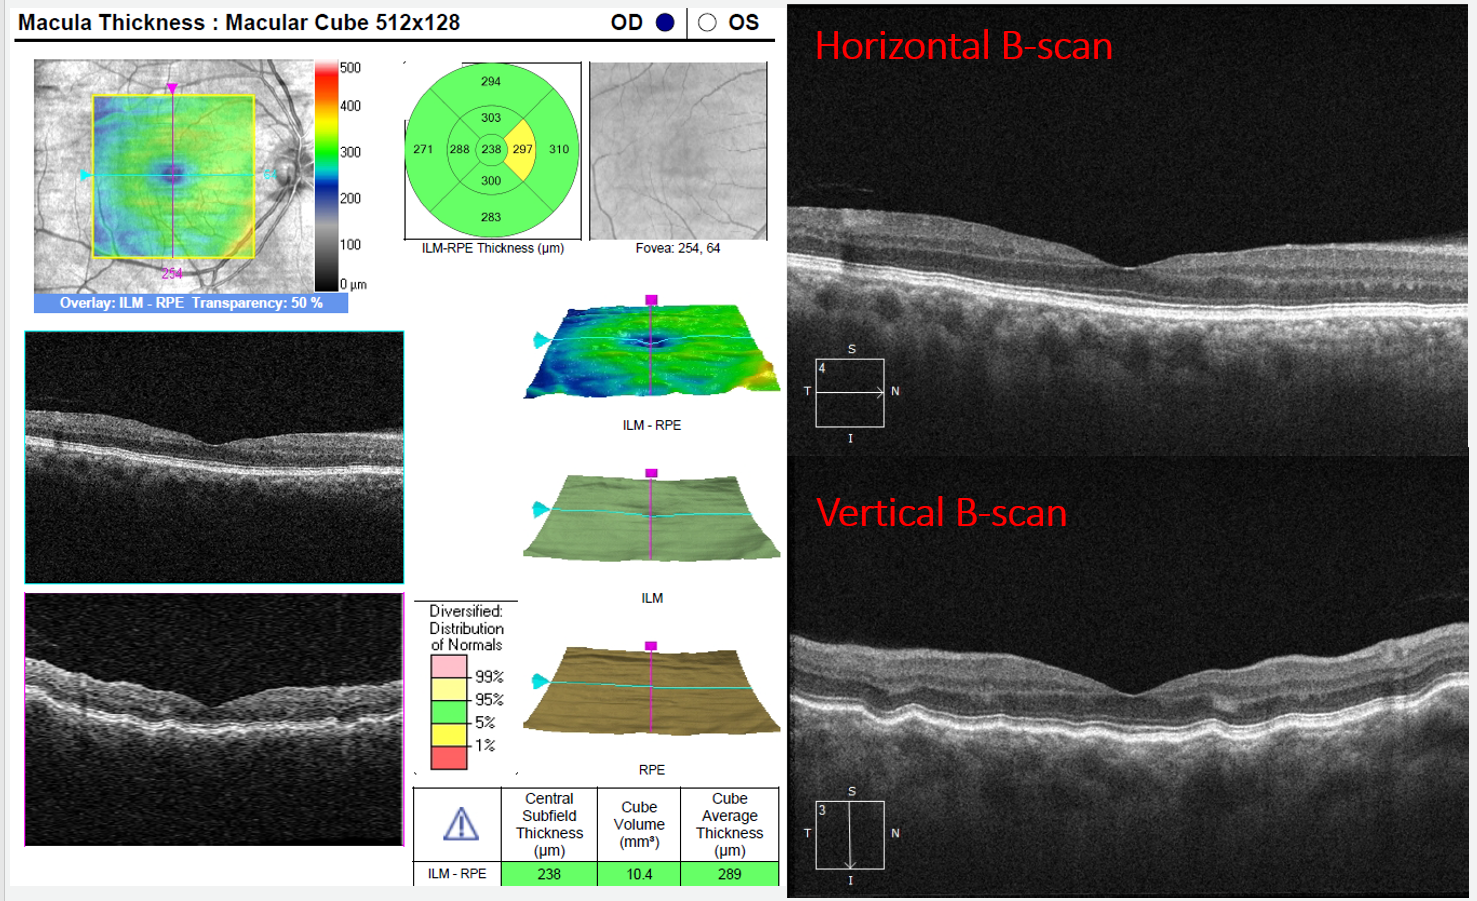 In this case of choroidal folds, minimal RPE disruption is seen on the horizontal scan while the vertical scan makes the choroidal and retinal effects apparent